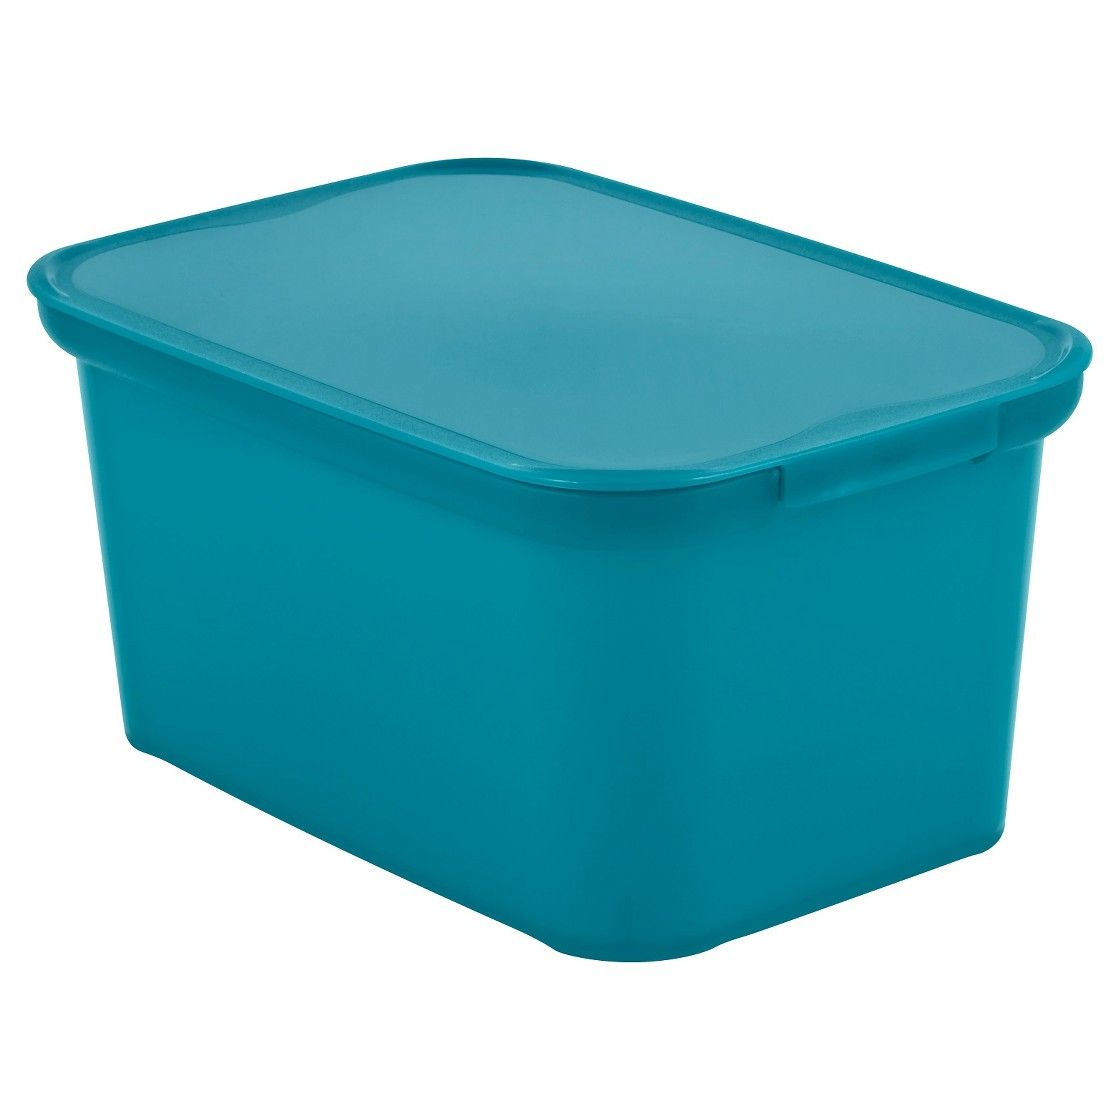 RE Amsterdam Small: Blue Ogee Storage Tub | Ideas for the House ...